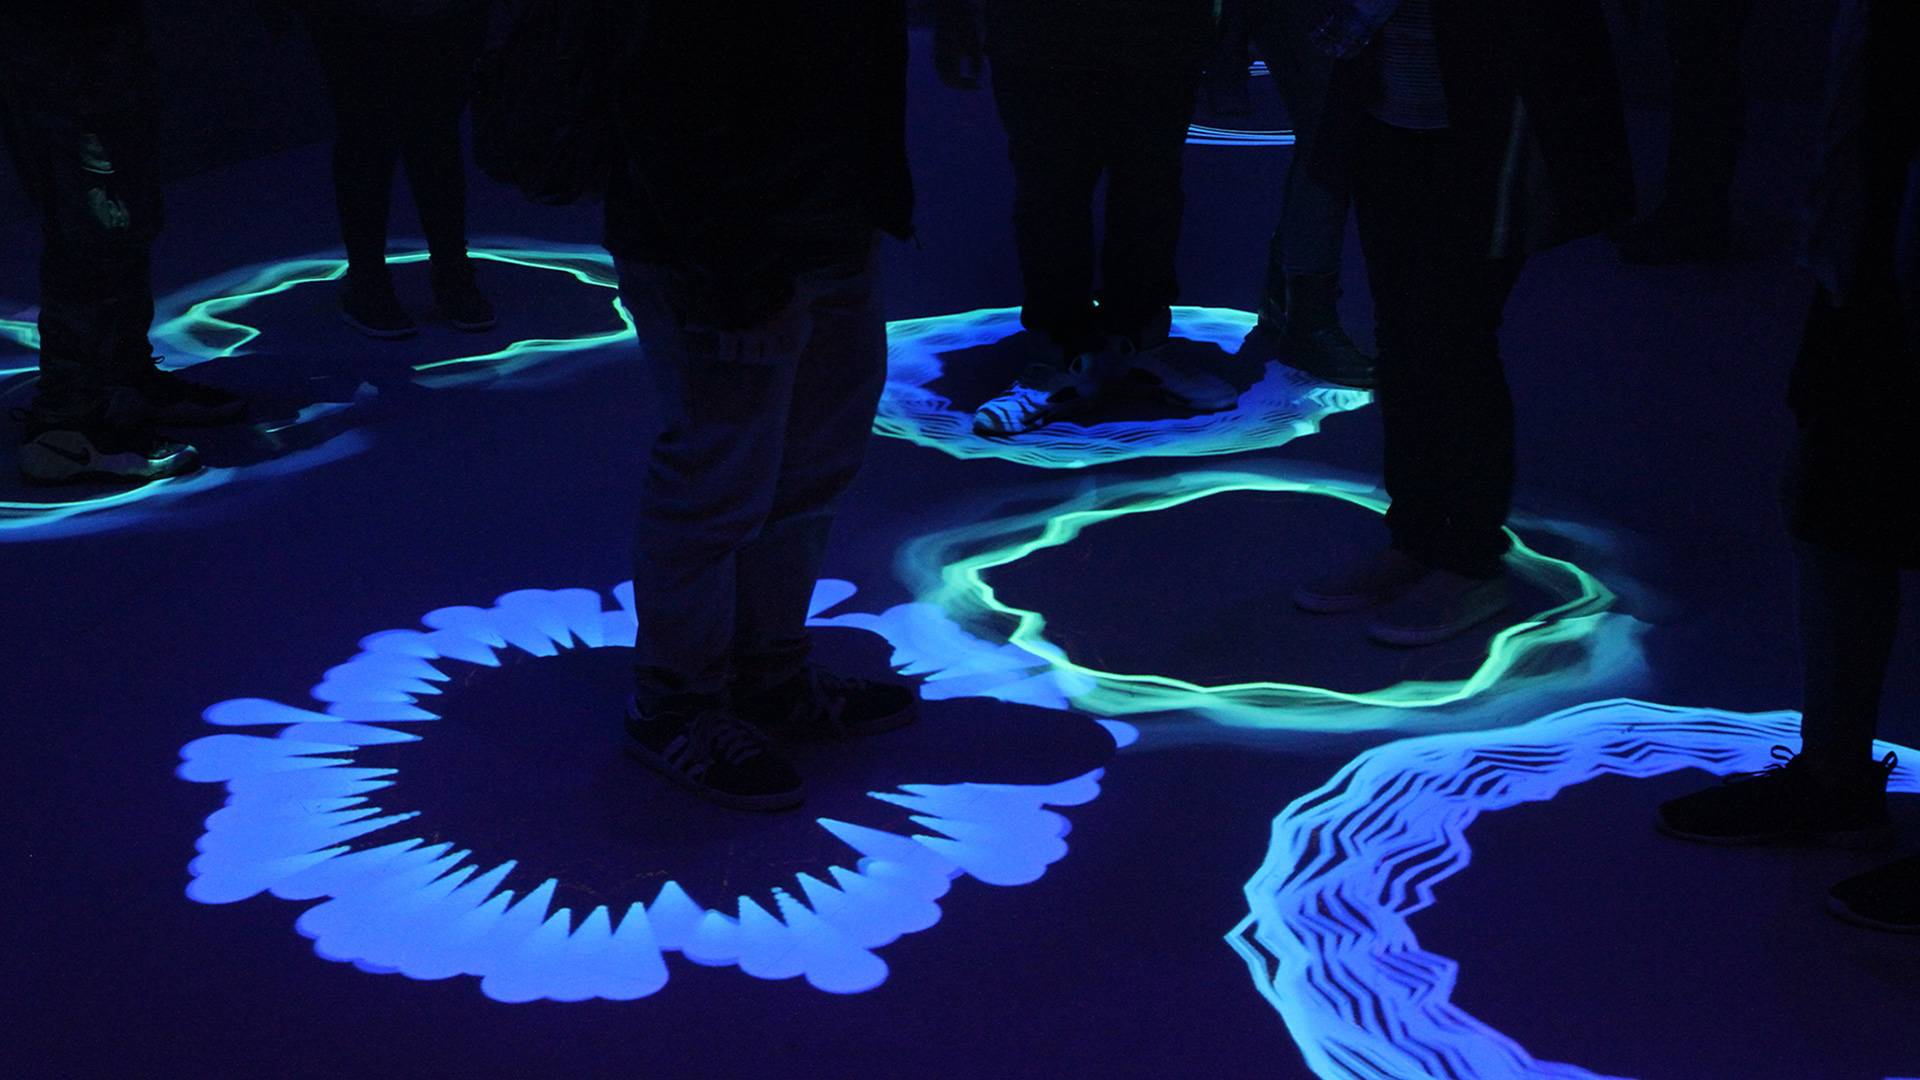 Museum of Feelings: Energized Room, responsive energy halos and animations